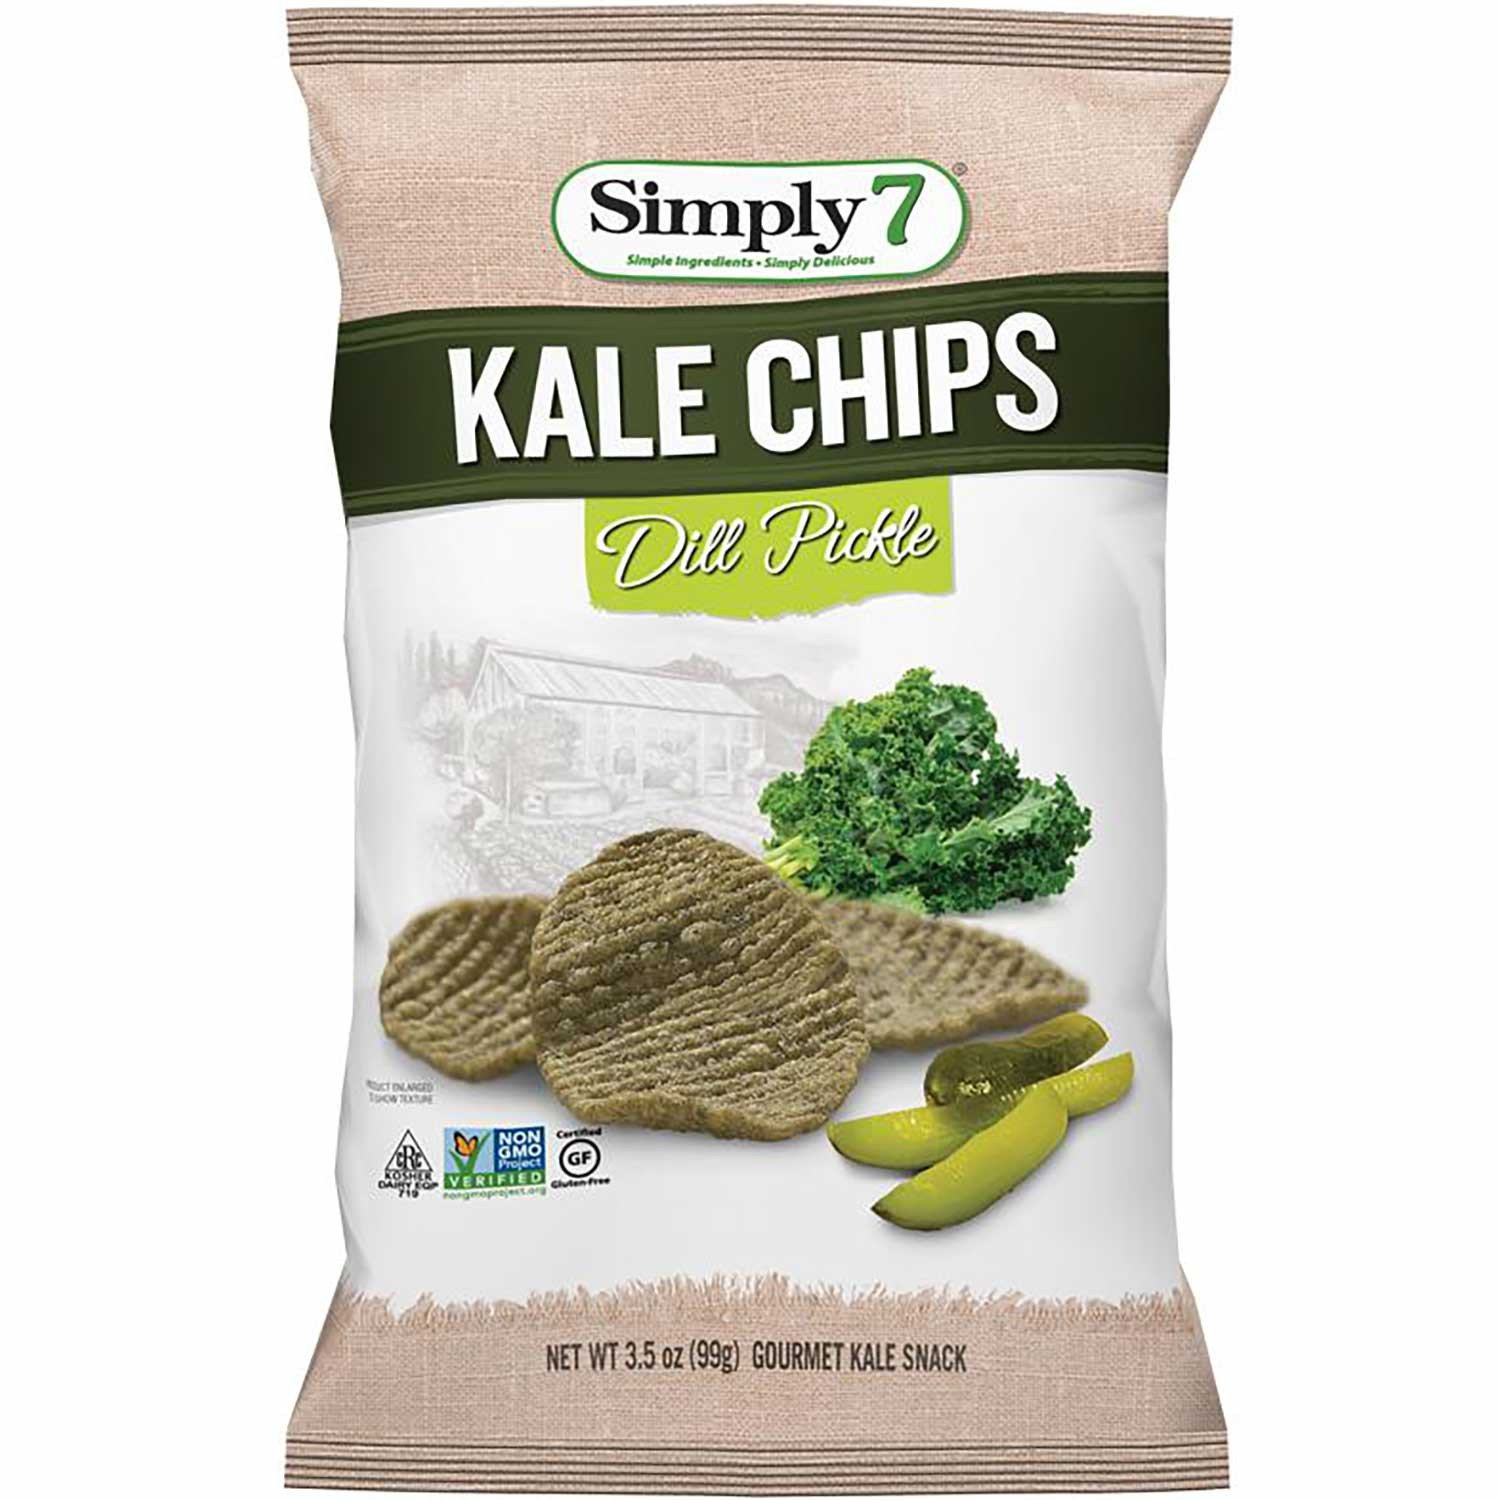 Simply 7 Kale Chips - Dill Pickle 99g